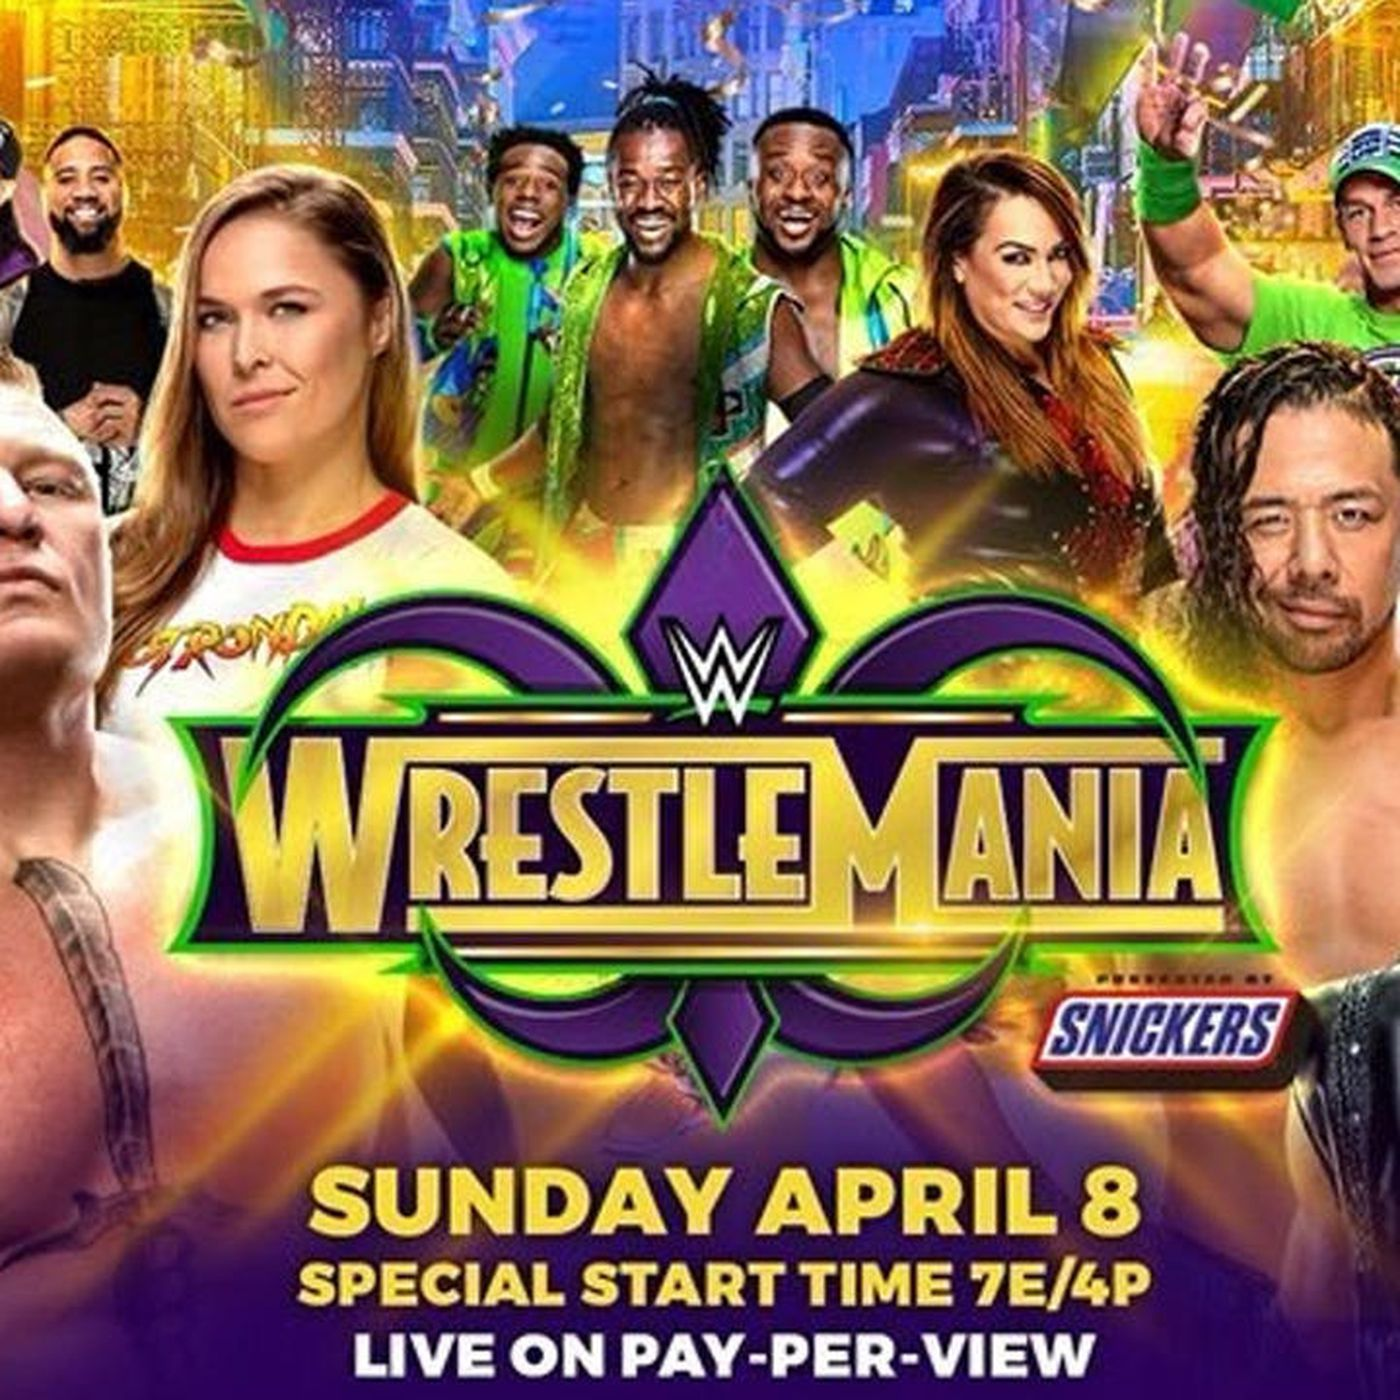 wrestlemania 2018: time, tv schedule, matches for wwe's ppv event